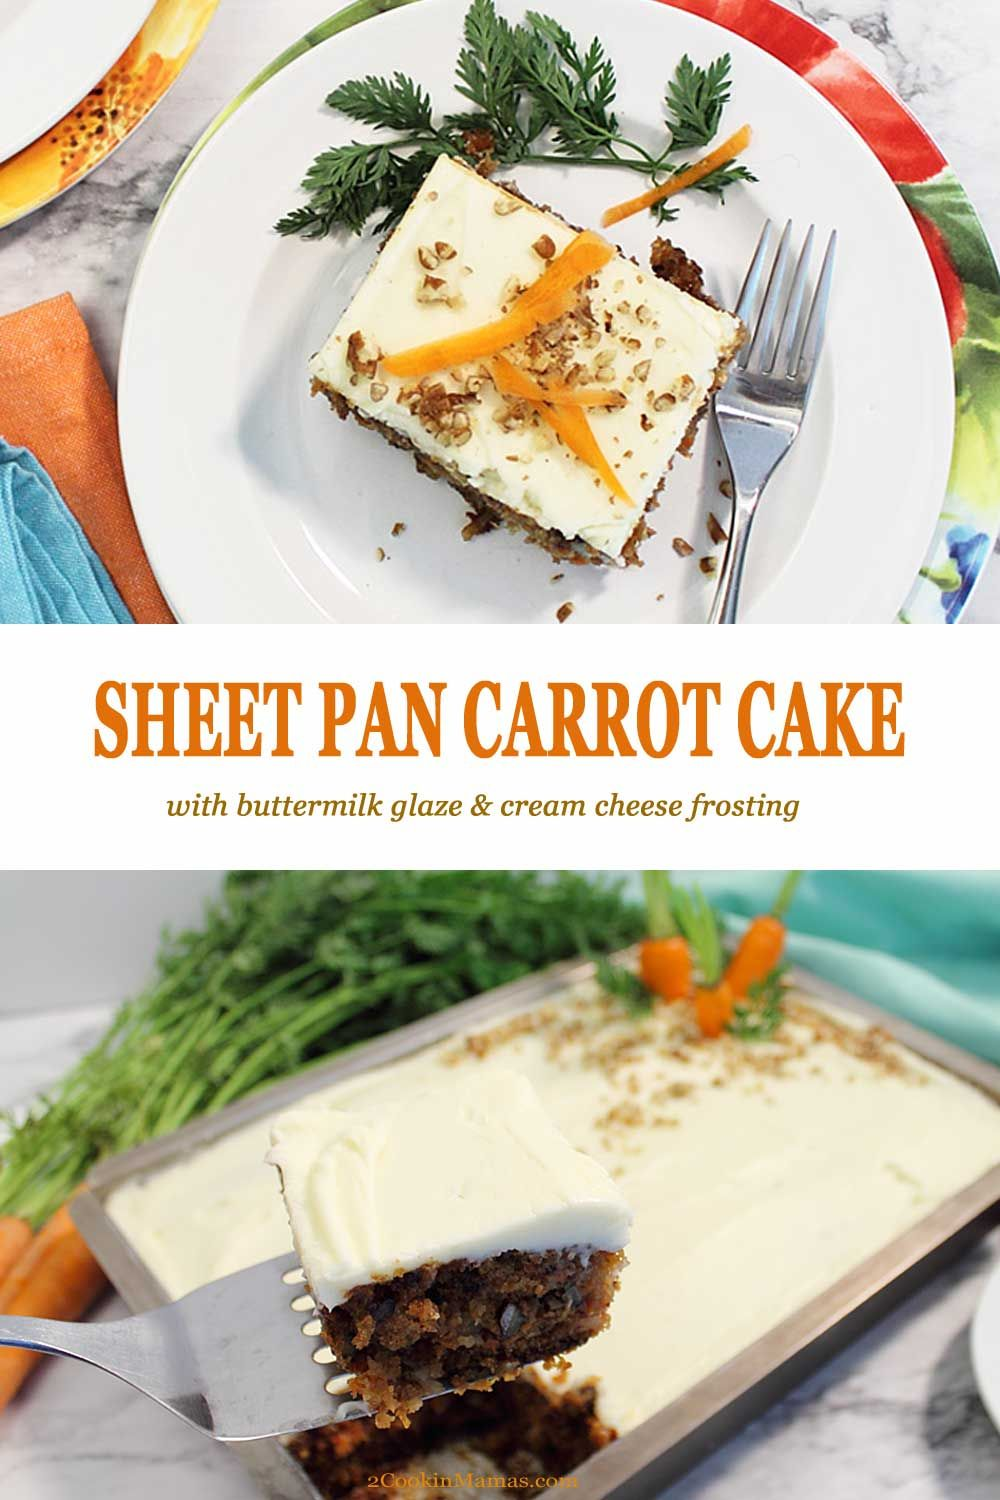 Sheet Pan Carrot Cake With Buttermilk Glaze Recipe Yummy Food Dessert Dessert Recipes Best Dessert Recipes